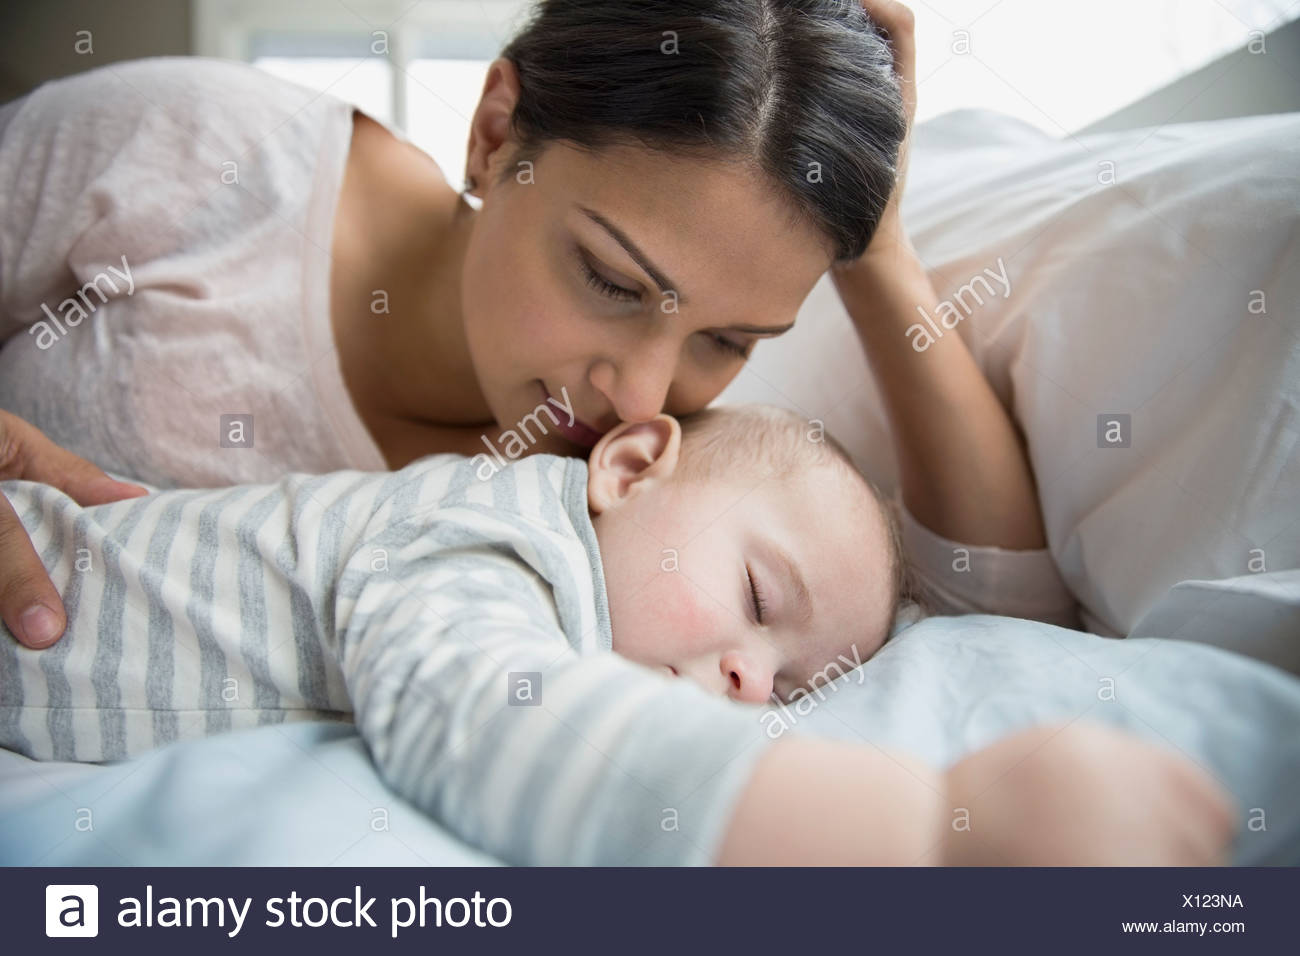 Mother watching sleeping baby on bed - Stock Image